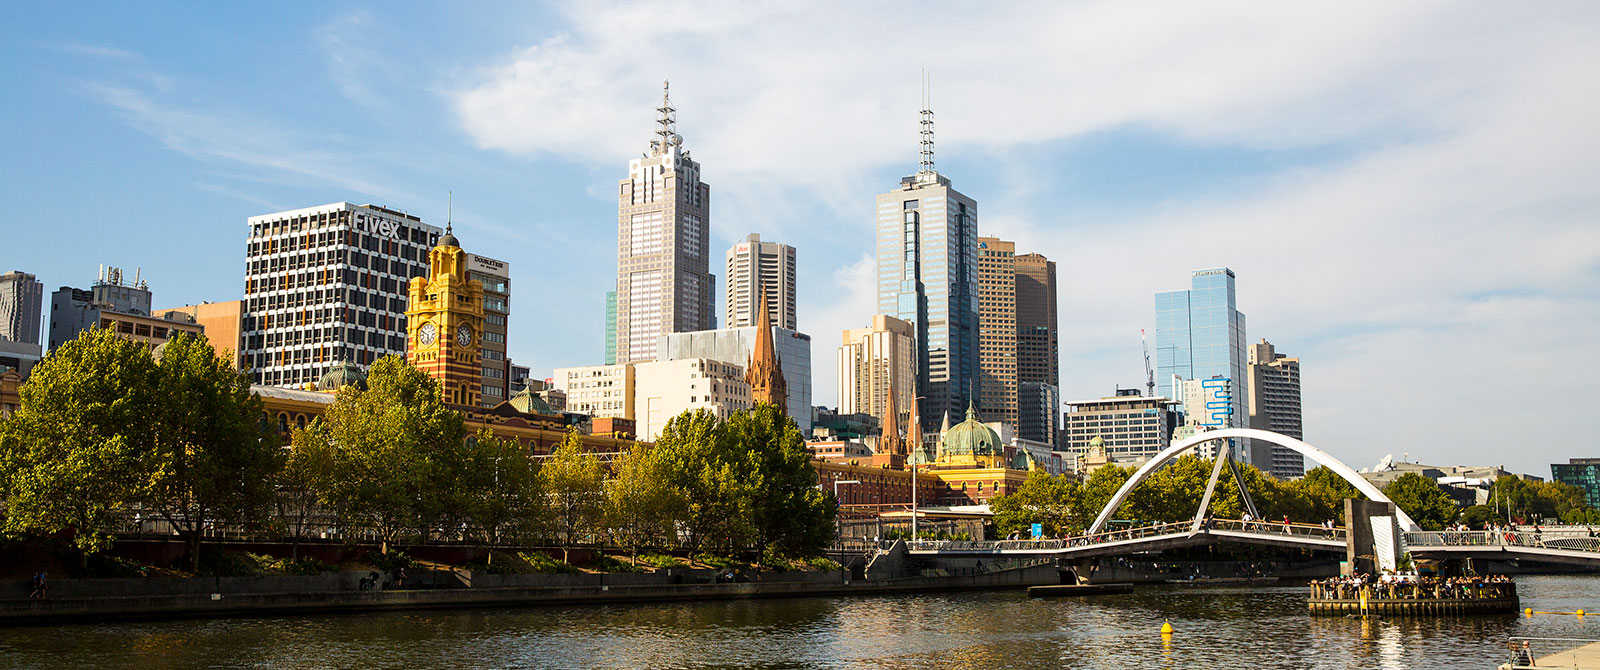 Melbourne Luxury Tour - City Skyline on the River